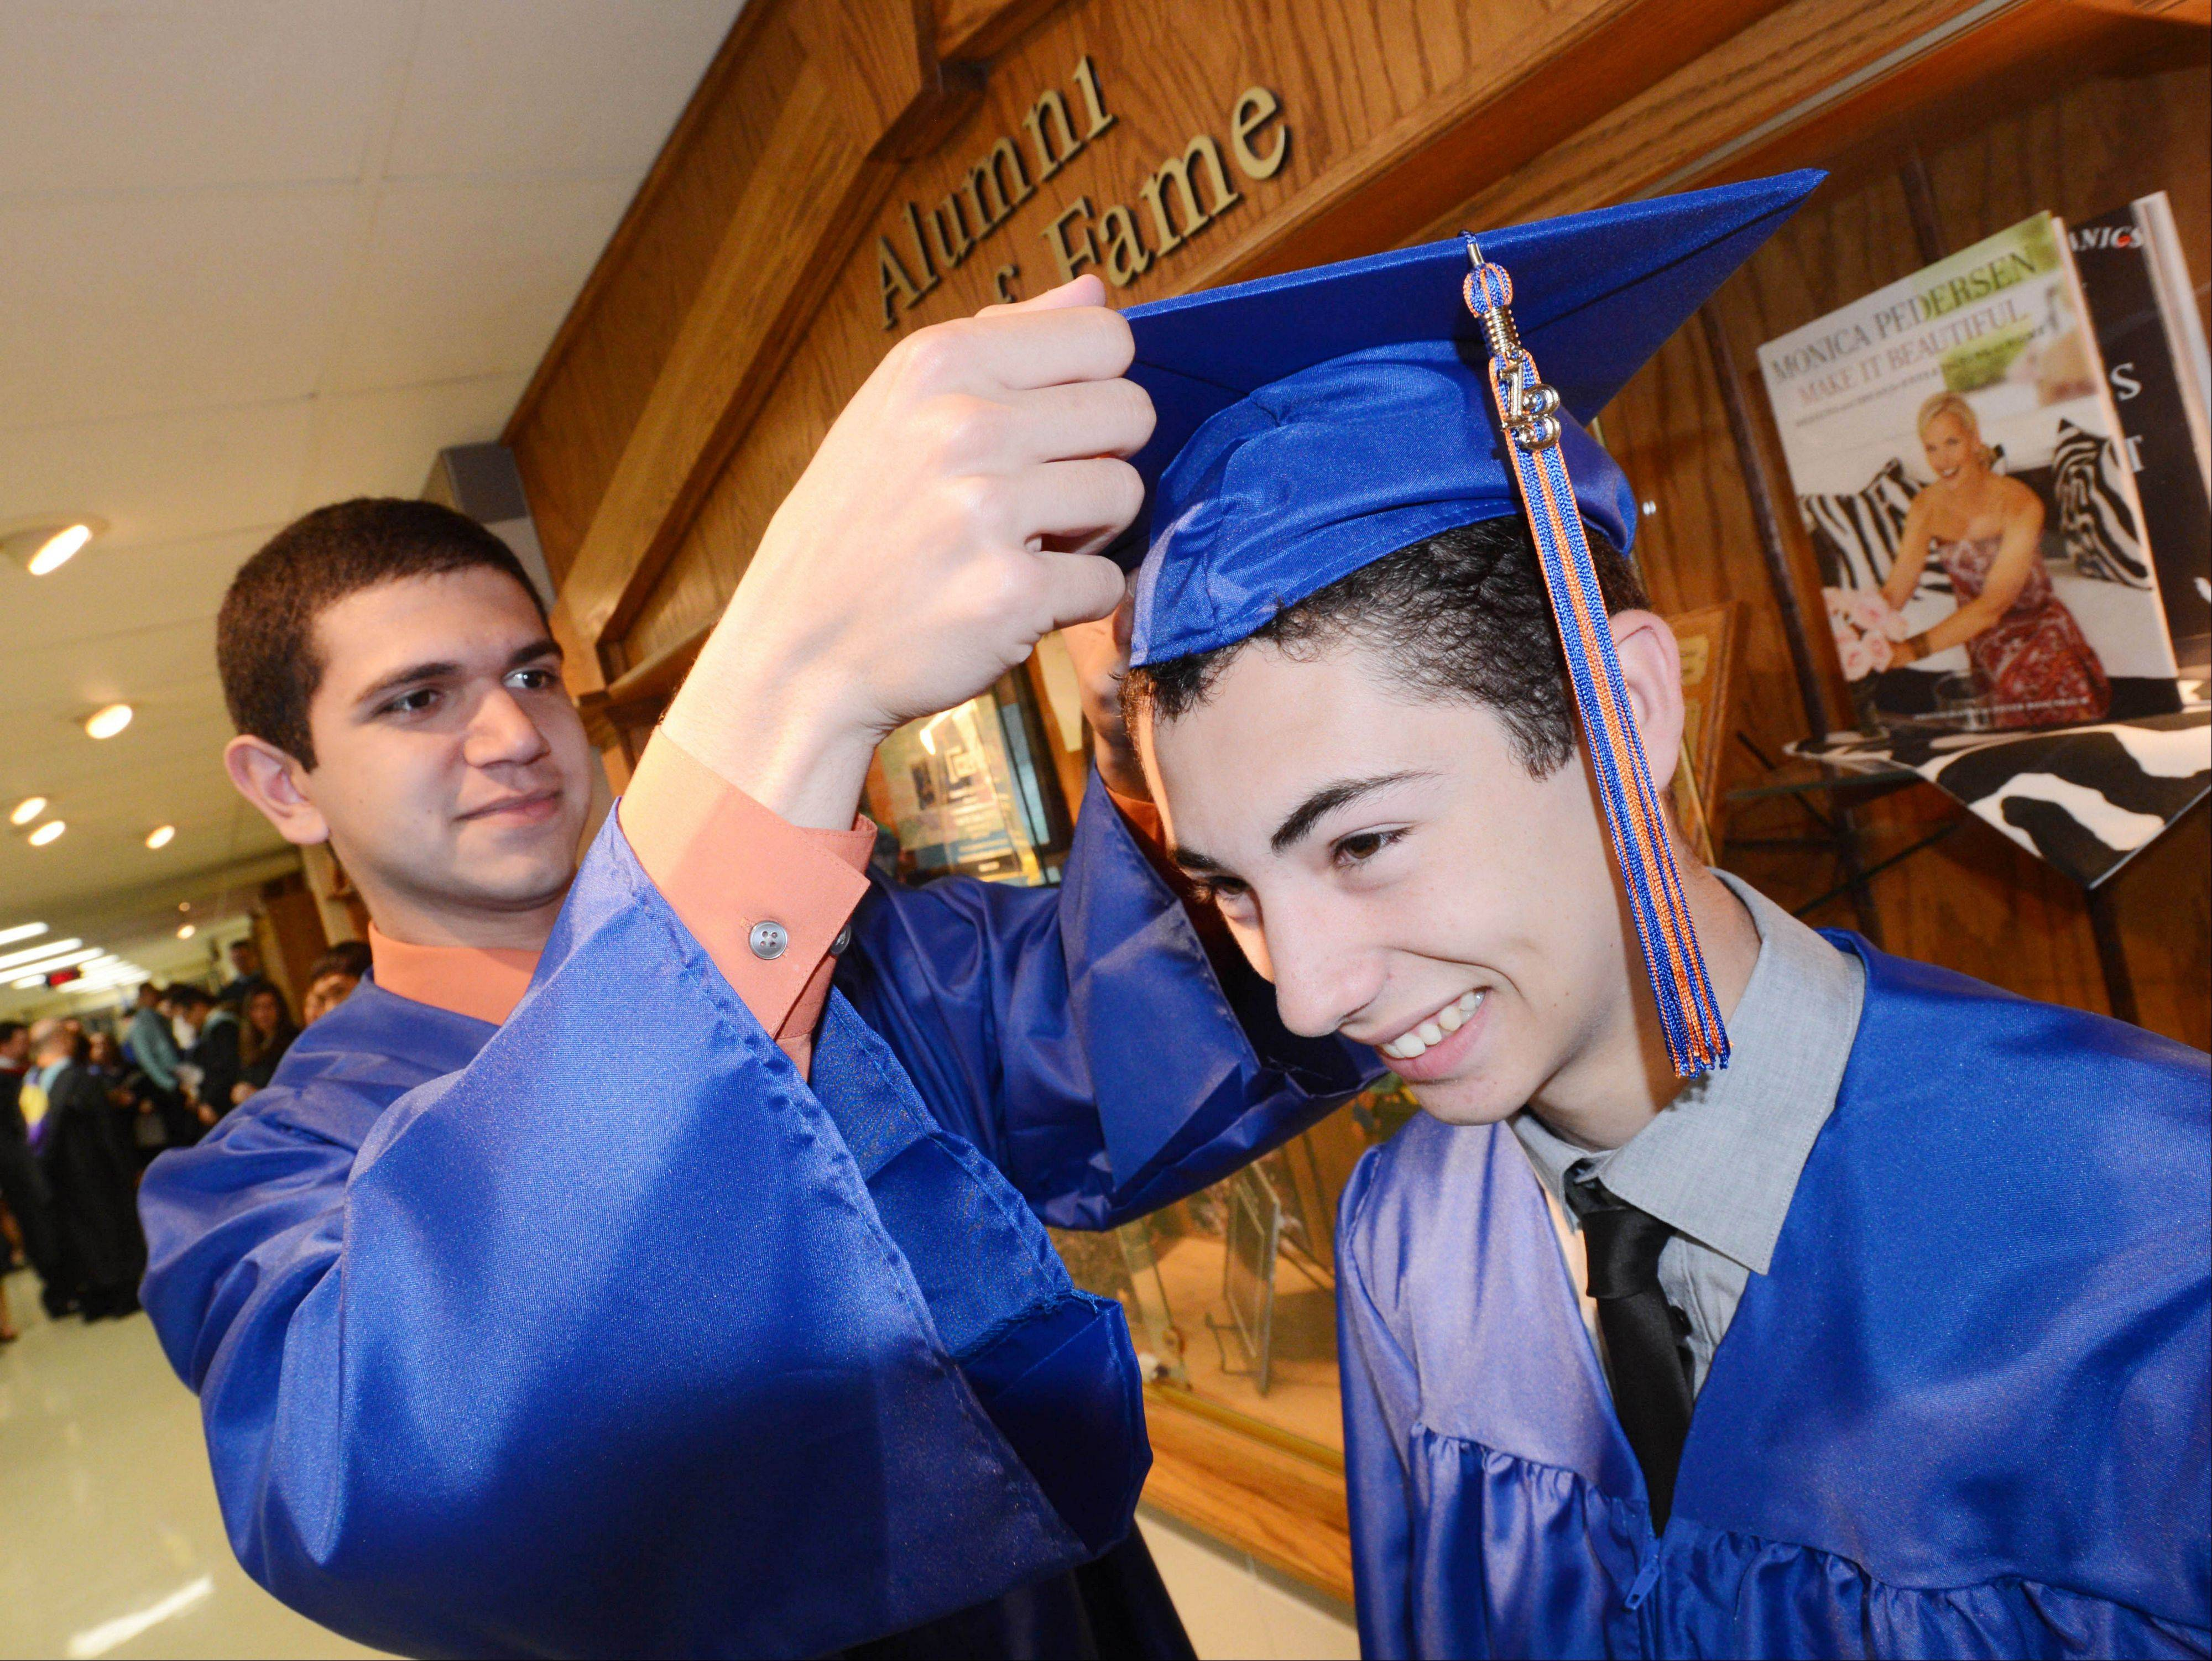 Simon Jiries helps Marco Bartolomeo with his hat during the Class of 2013 Commencement at Fenton High School Sunday. To see more photos and order reprints, visit www.dailyherald.com/galleries/news/graduations/